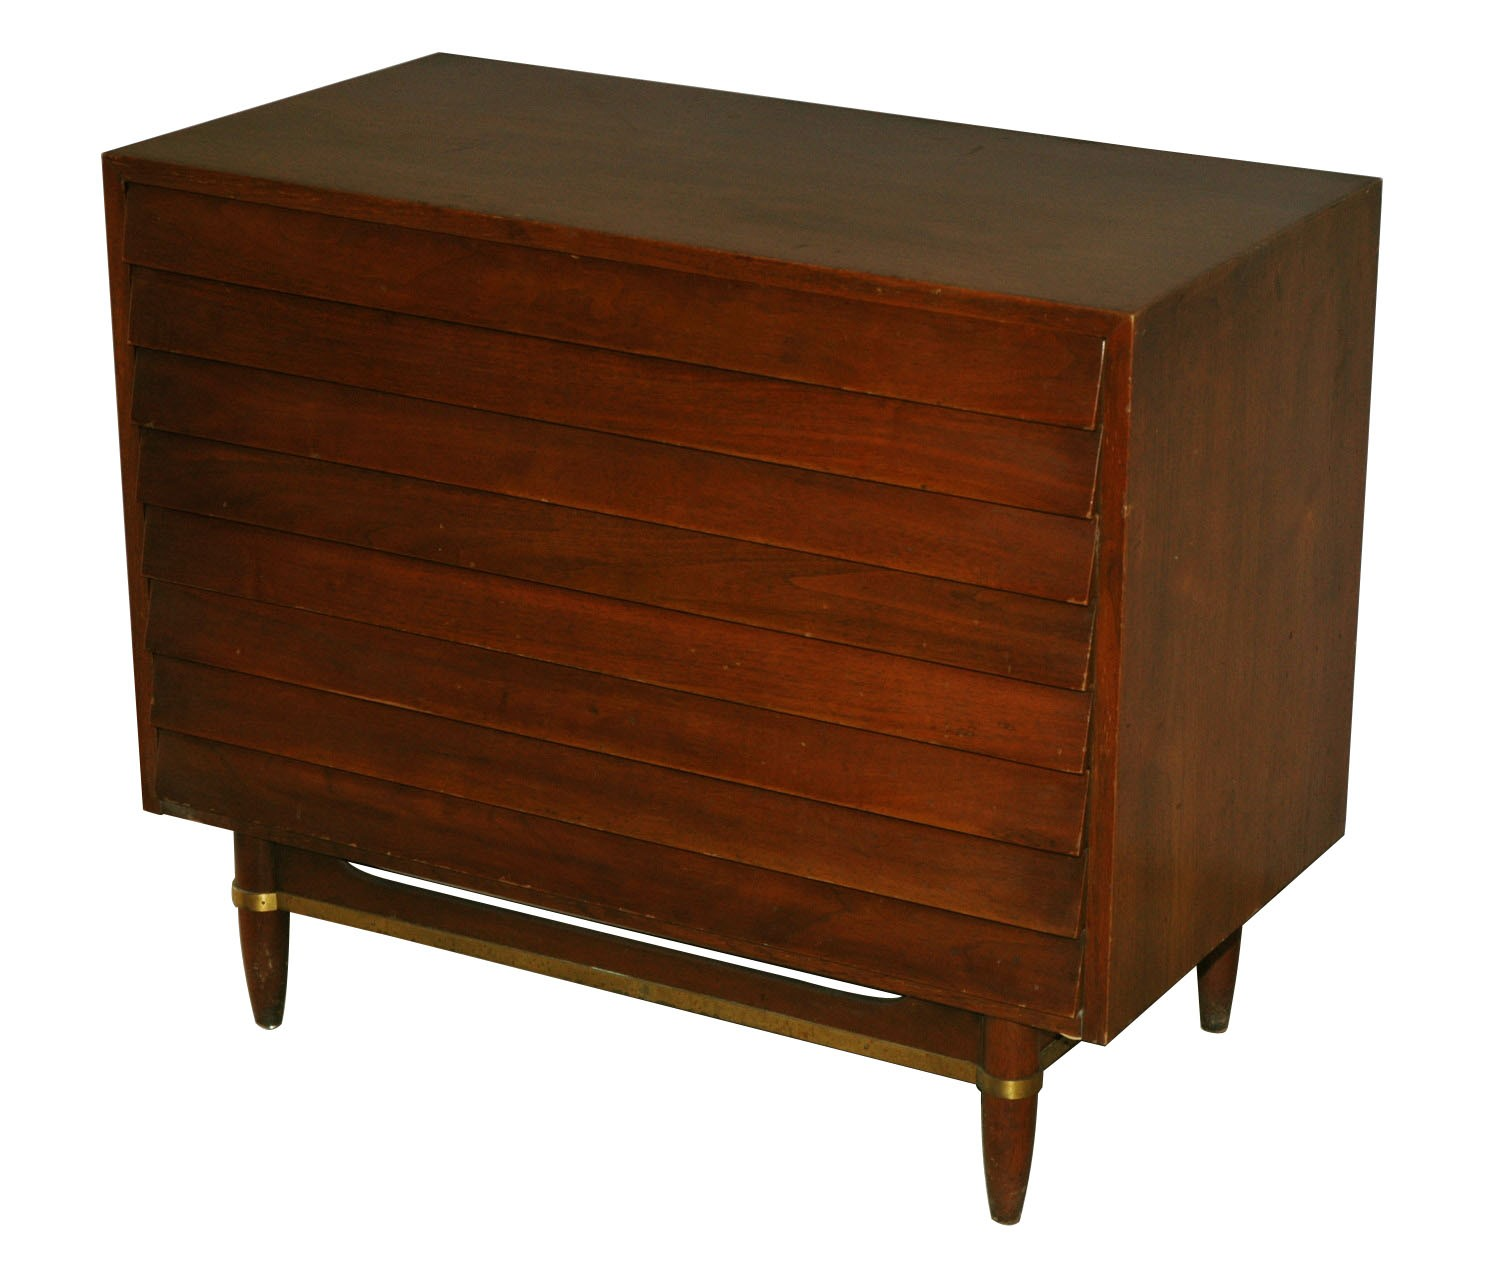 American Of Martinsville S Mid Century Furniture The Most Are Danish Modern And High Quality At Least From What I Ve Found Online